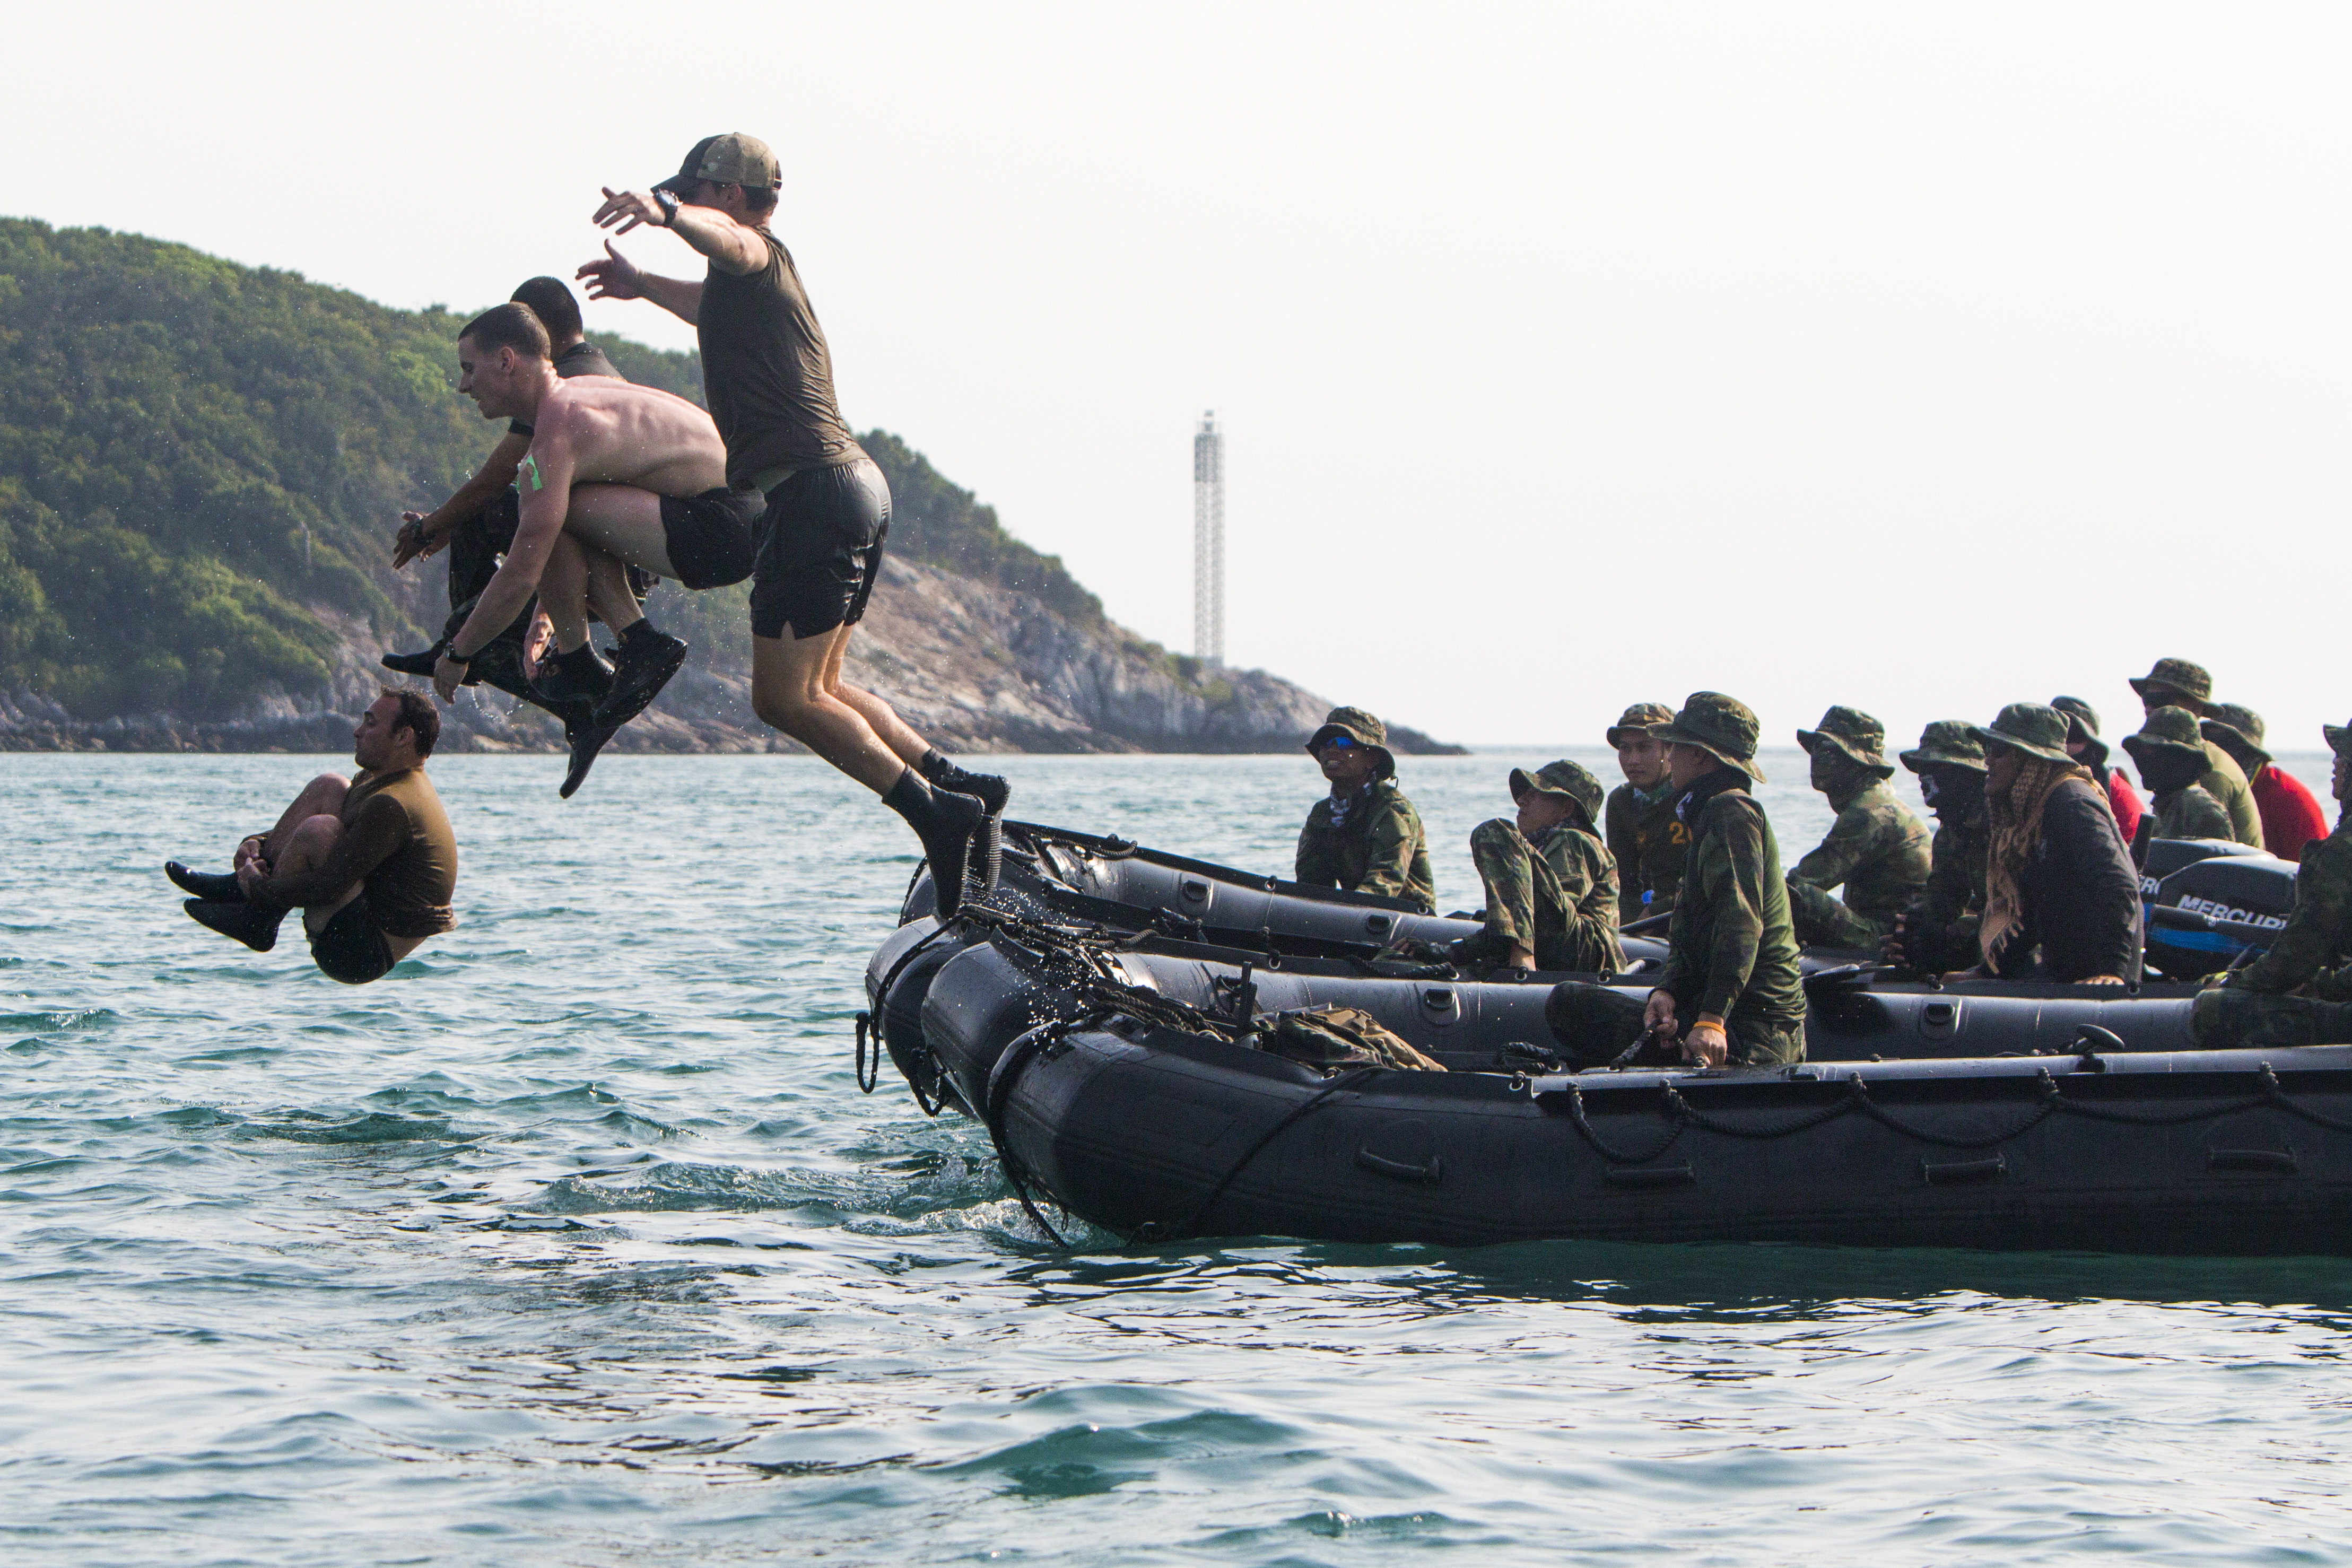 U.S., Thai and Republic of Korea Marines conduct jumping competitions between helocast training runs during Exercise Cobra Gold 2018 in Sattahip, Chonburi province, Kingdom of Thailand, Feb. 12, 2018. Helocasting is a method of inserting reconnaissance and surveillance teams in support of small boat operations. This training provided a venue for both United States and partner nations to advance interoperability and increase partner capacity in planning and executing complex and realistic multinational force and combined task force operations. Cobra Gold 18 is an annual exercise conducted in the Kingdom of Thailand held from Feb. 13-23 with seven full participating nations. (UCpl. Breanna L. Weisenberger/Marines)